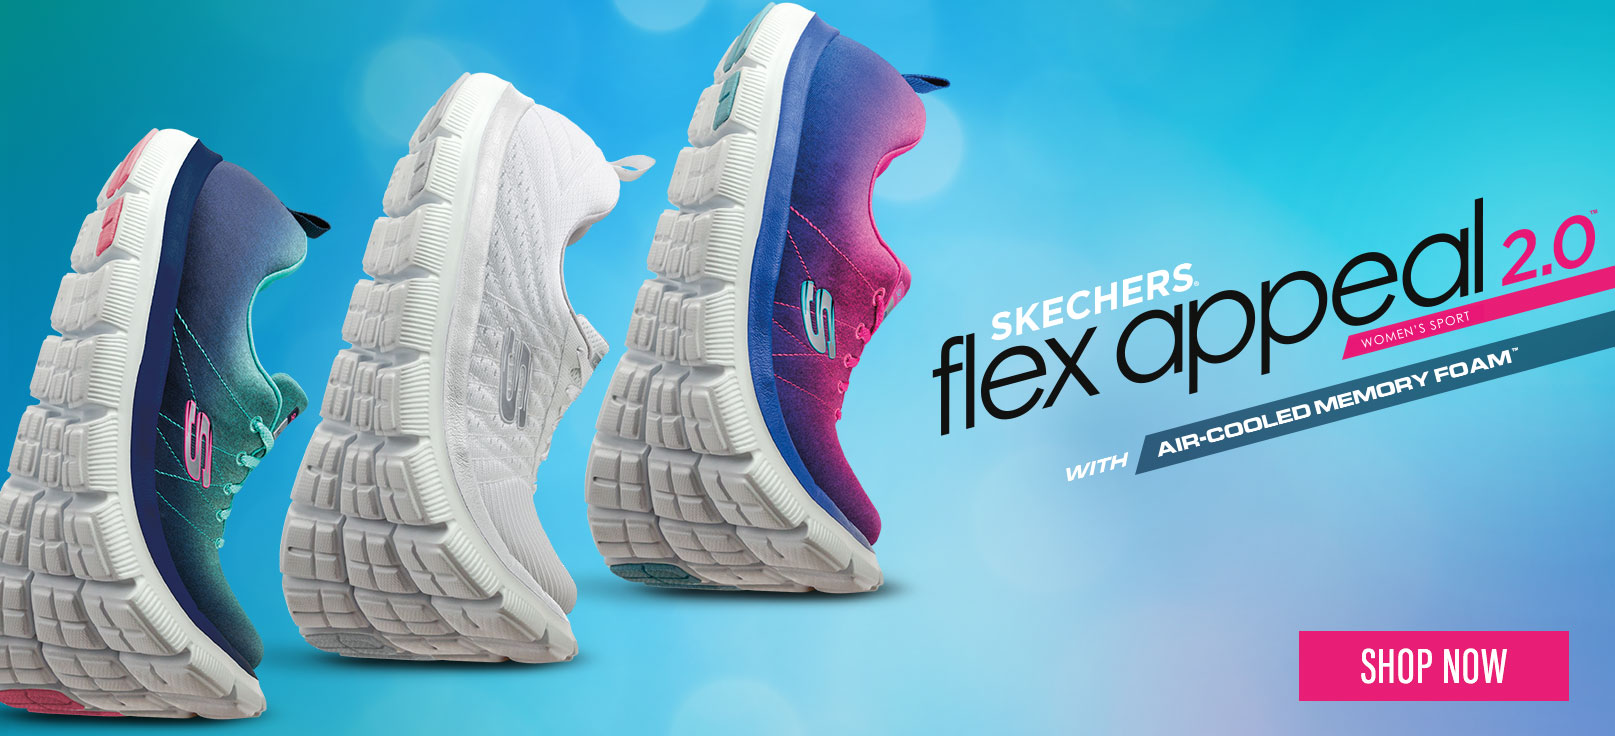 Shop for Men's and Women's Skechers Shoes, Boots, and Sandals including Skechers Burst, GOwalk, Relaxed Fit and Memory Foam.  All sizes and widths available.